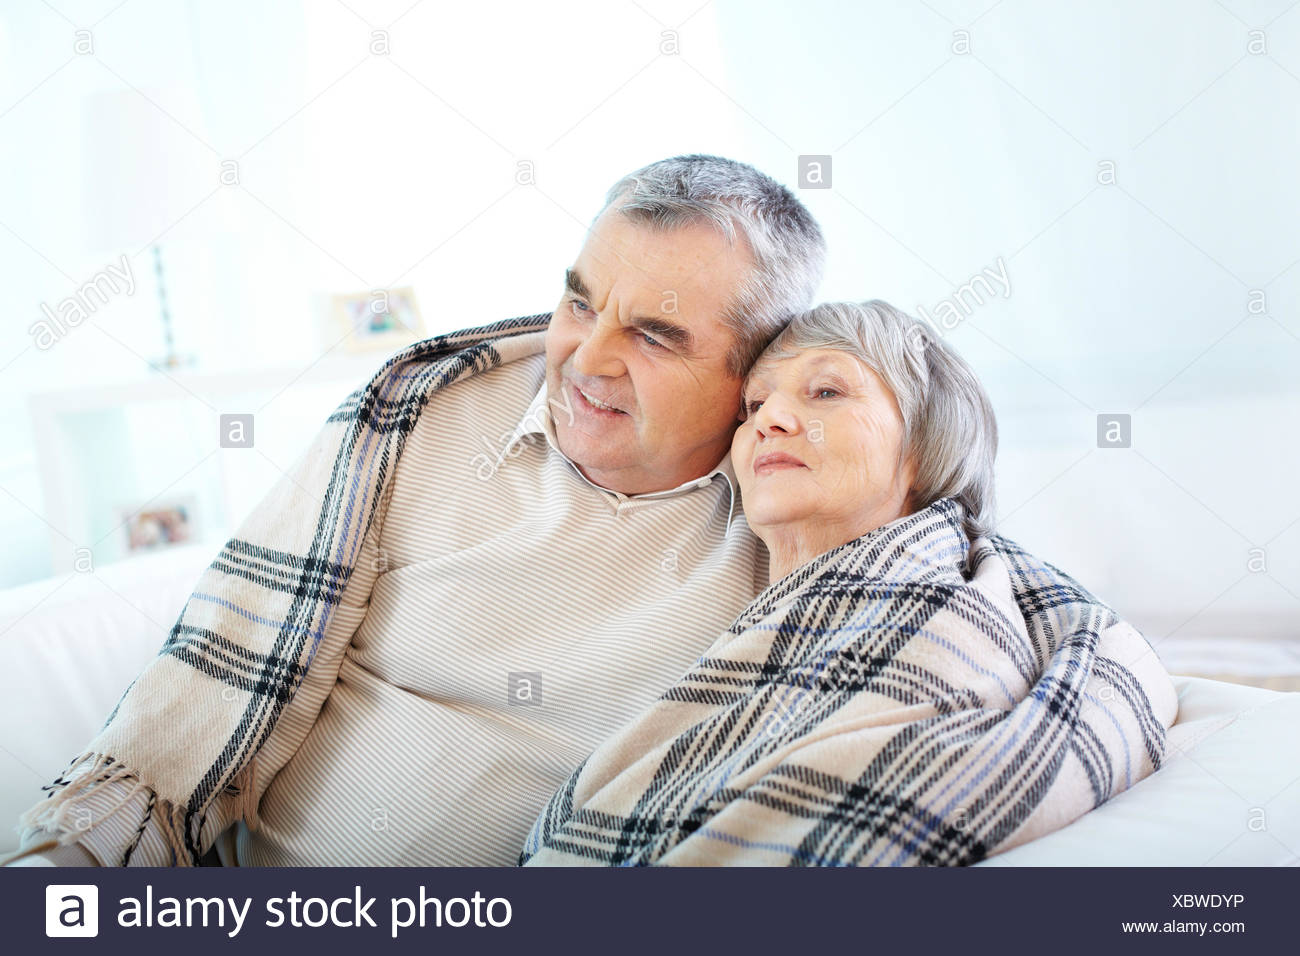 Portrait of a senior couple wrapped in plaid - Stock Image